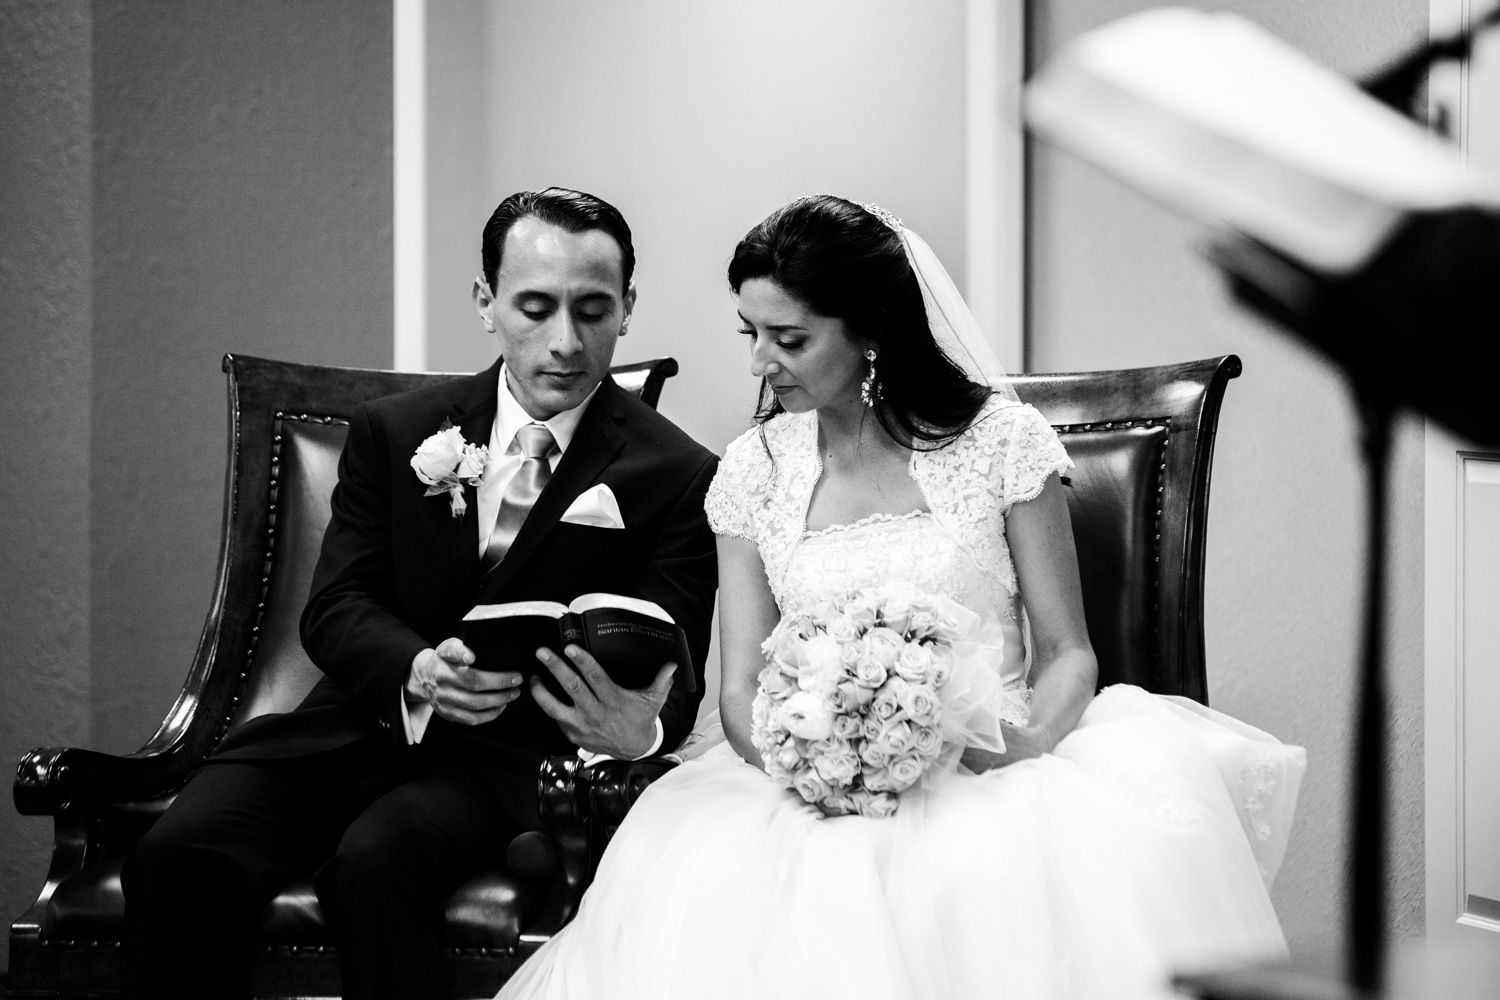 Bride and groom read a scripture during Kingdom Hall wedding ceremony of Jehovah's Witnesses